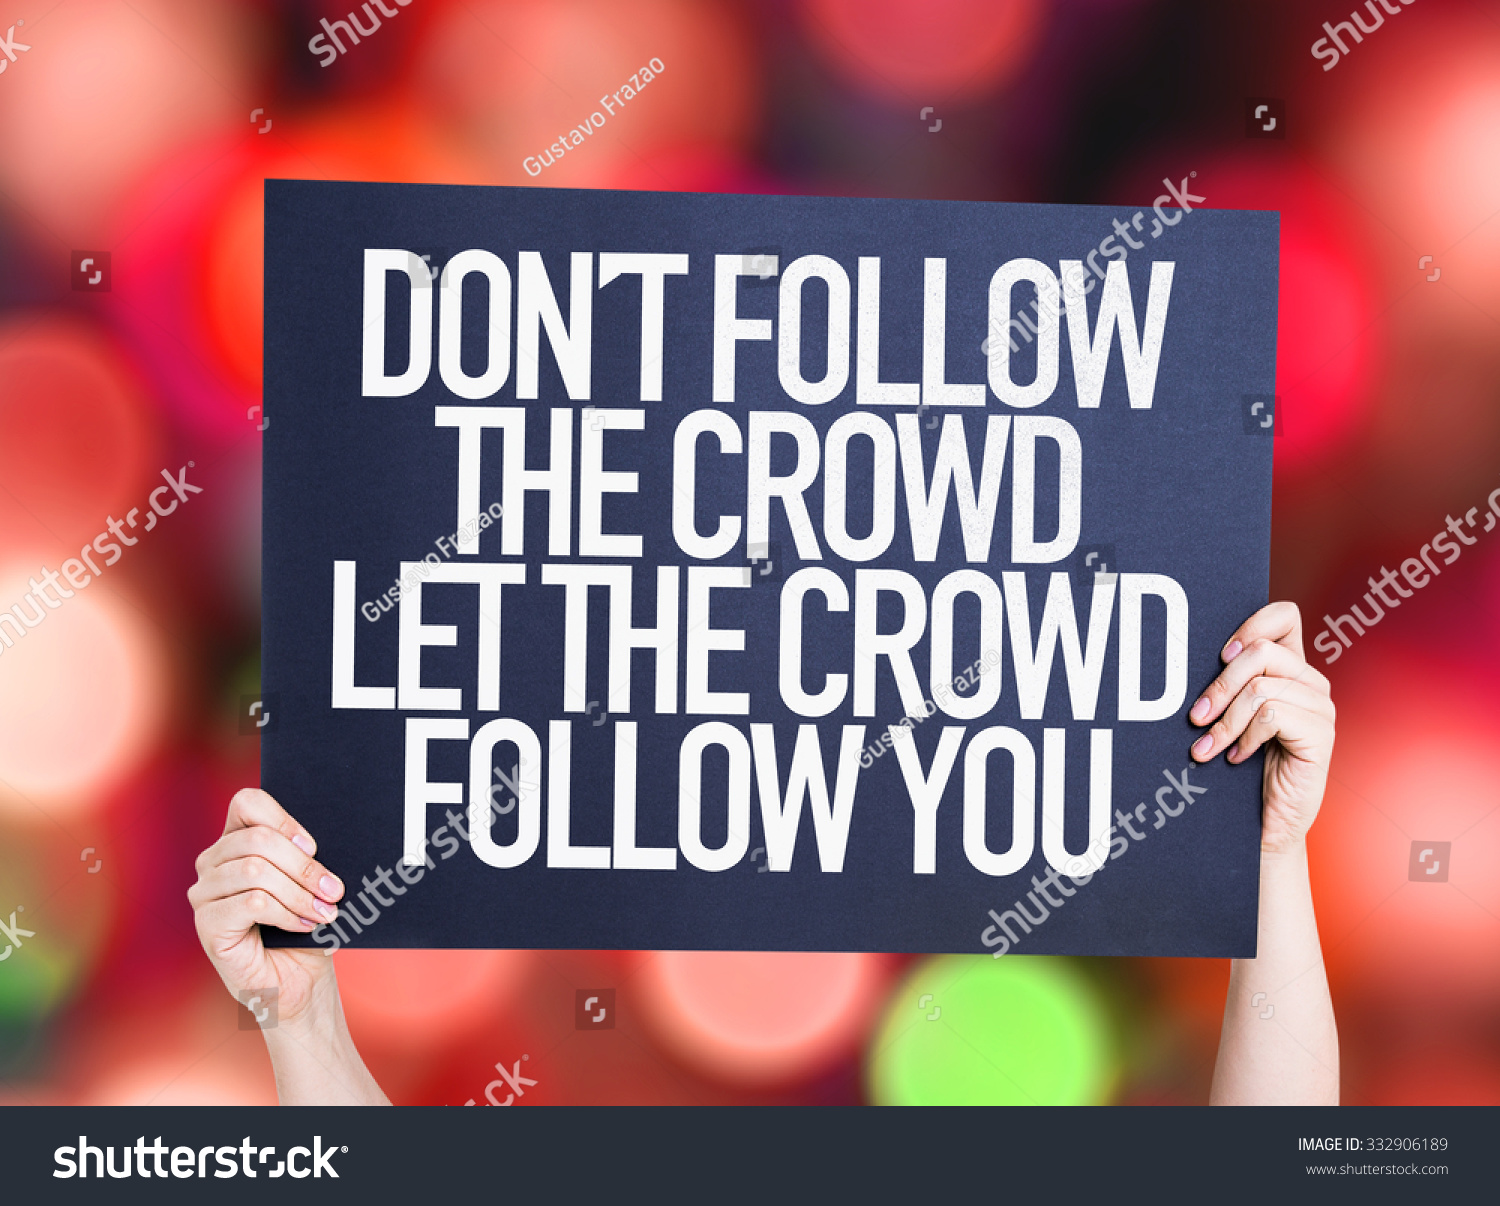 4 Amazing Reasons Why You Should Stop Following the Crowd